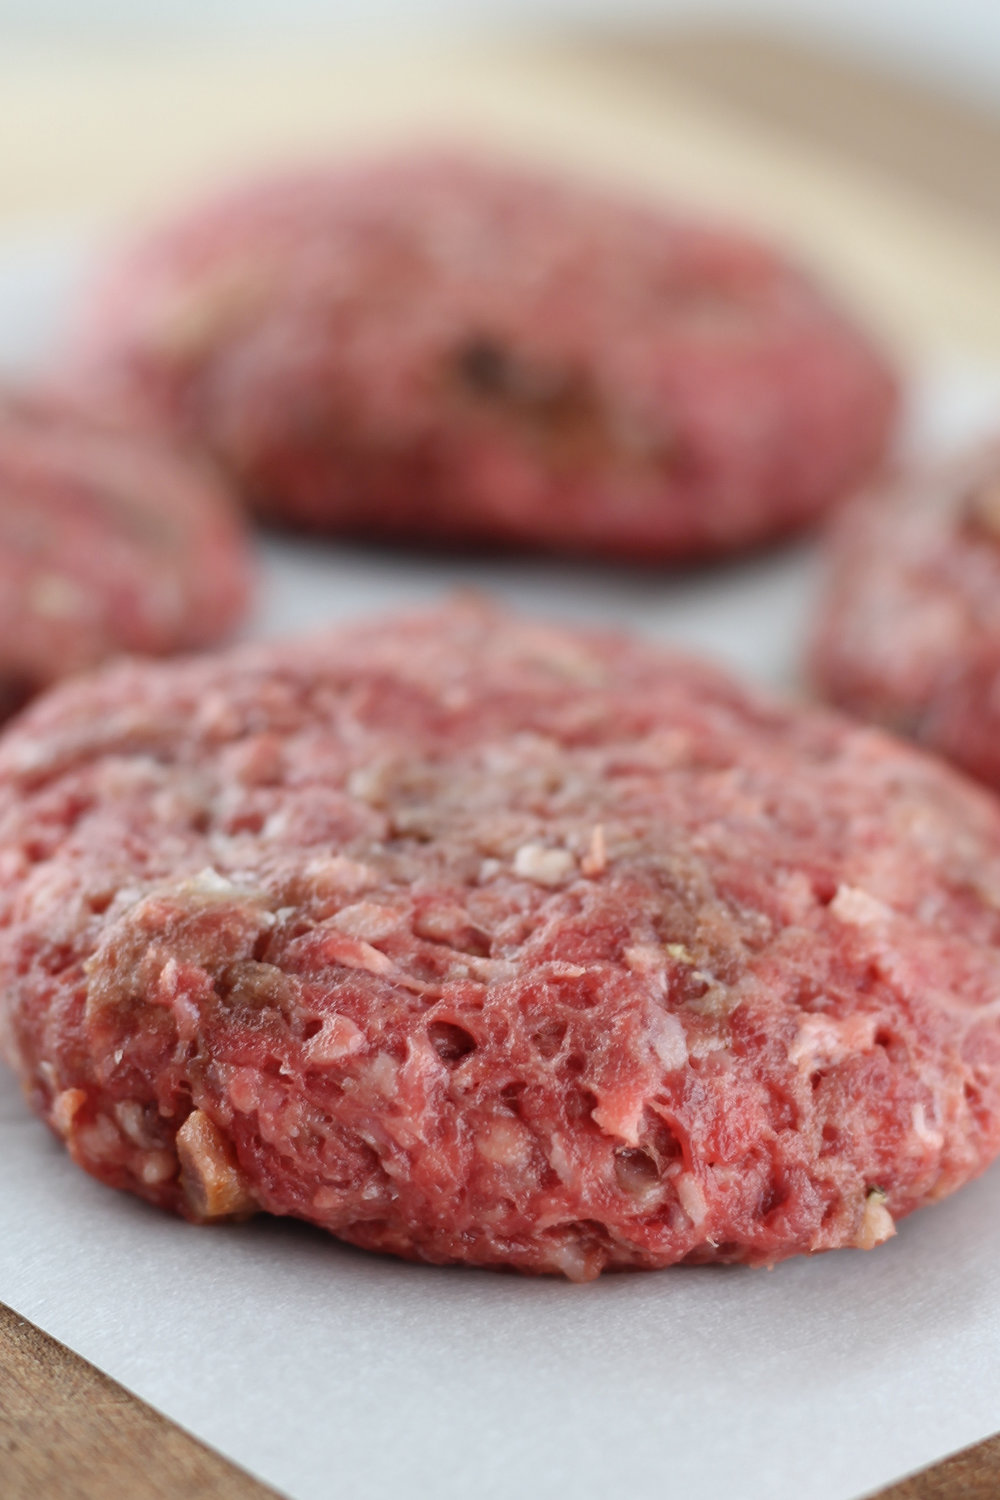 Beef, Burger, best, Homemade, Home cooked, recipes, easy, quick, delicious, organic